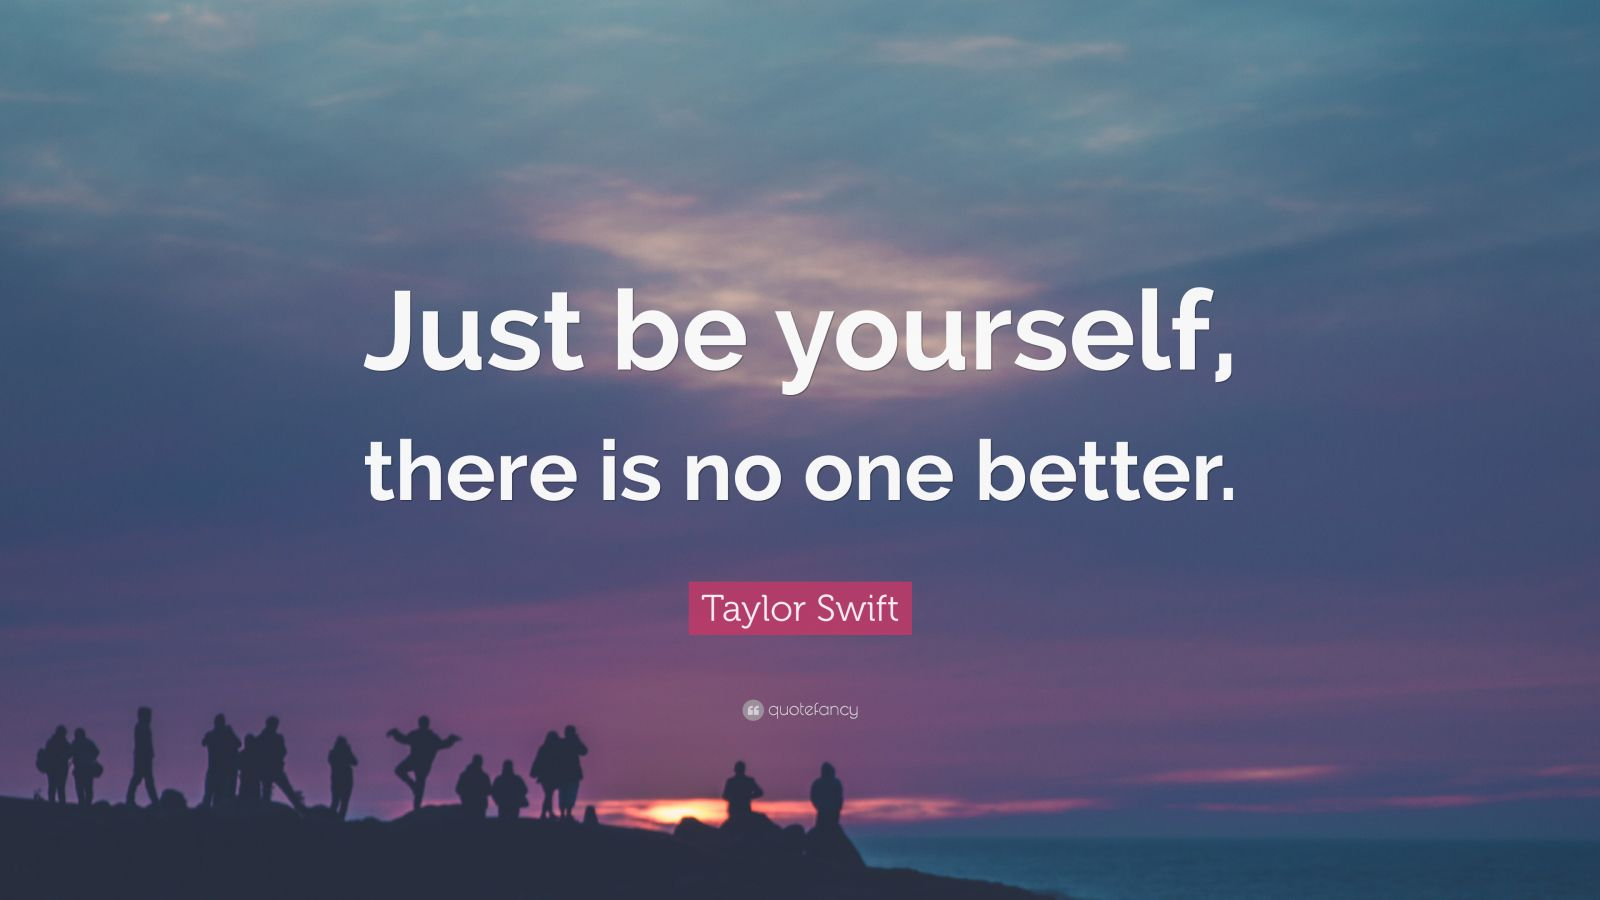 Inspirational Quotes Wallpaper In Hindi Taylor Swift Quote Just Be Yourself There Is No One